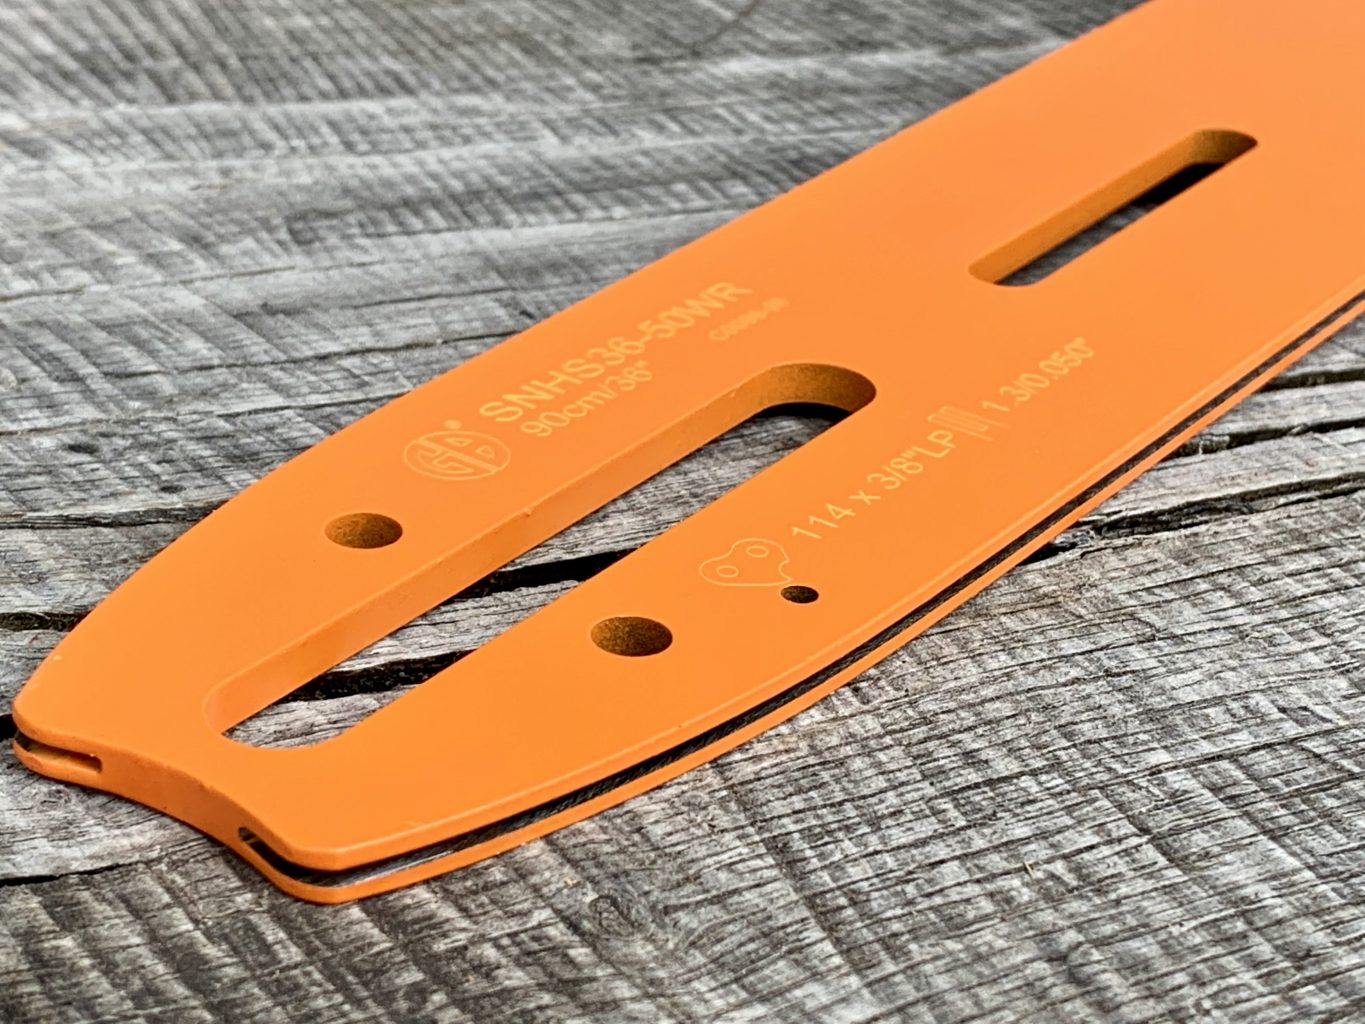 """SNHDS25-50WR 25""""[63cm] GB DOUBLE Slotted Lo Pro Milling Bar For Stihl 044, 045, 046, 048, 064, 065, 066, MS440, MS441, MS460, MS461, MS650, MS660, MS661 3/8 Lo Pro .050 84 drive links"""